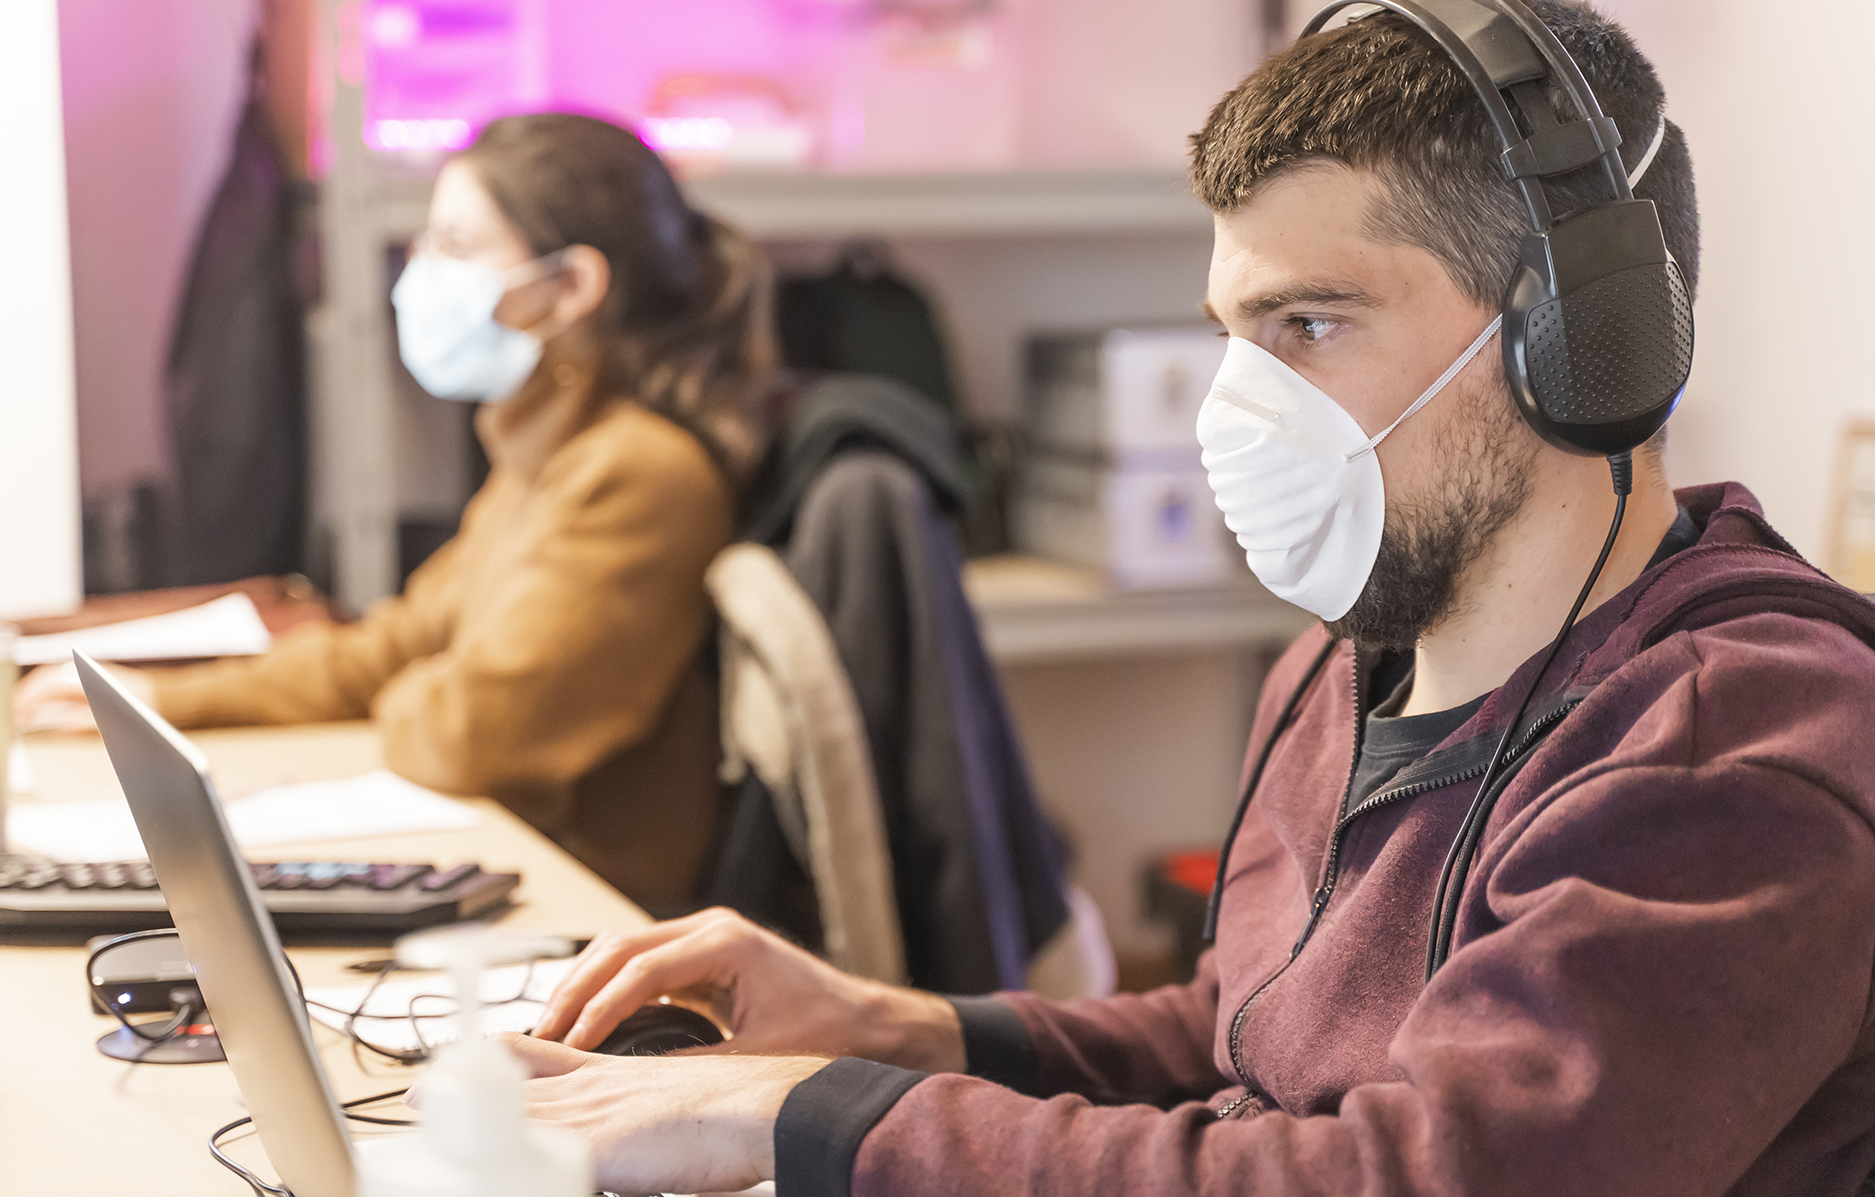 Man working on laptop with mask